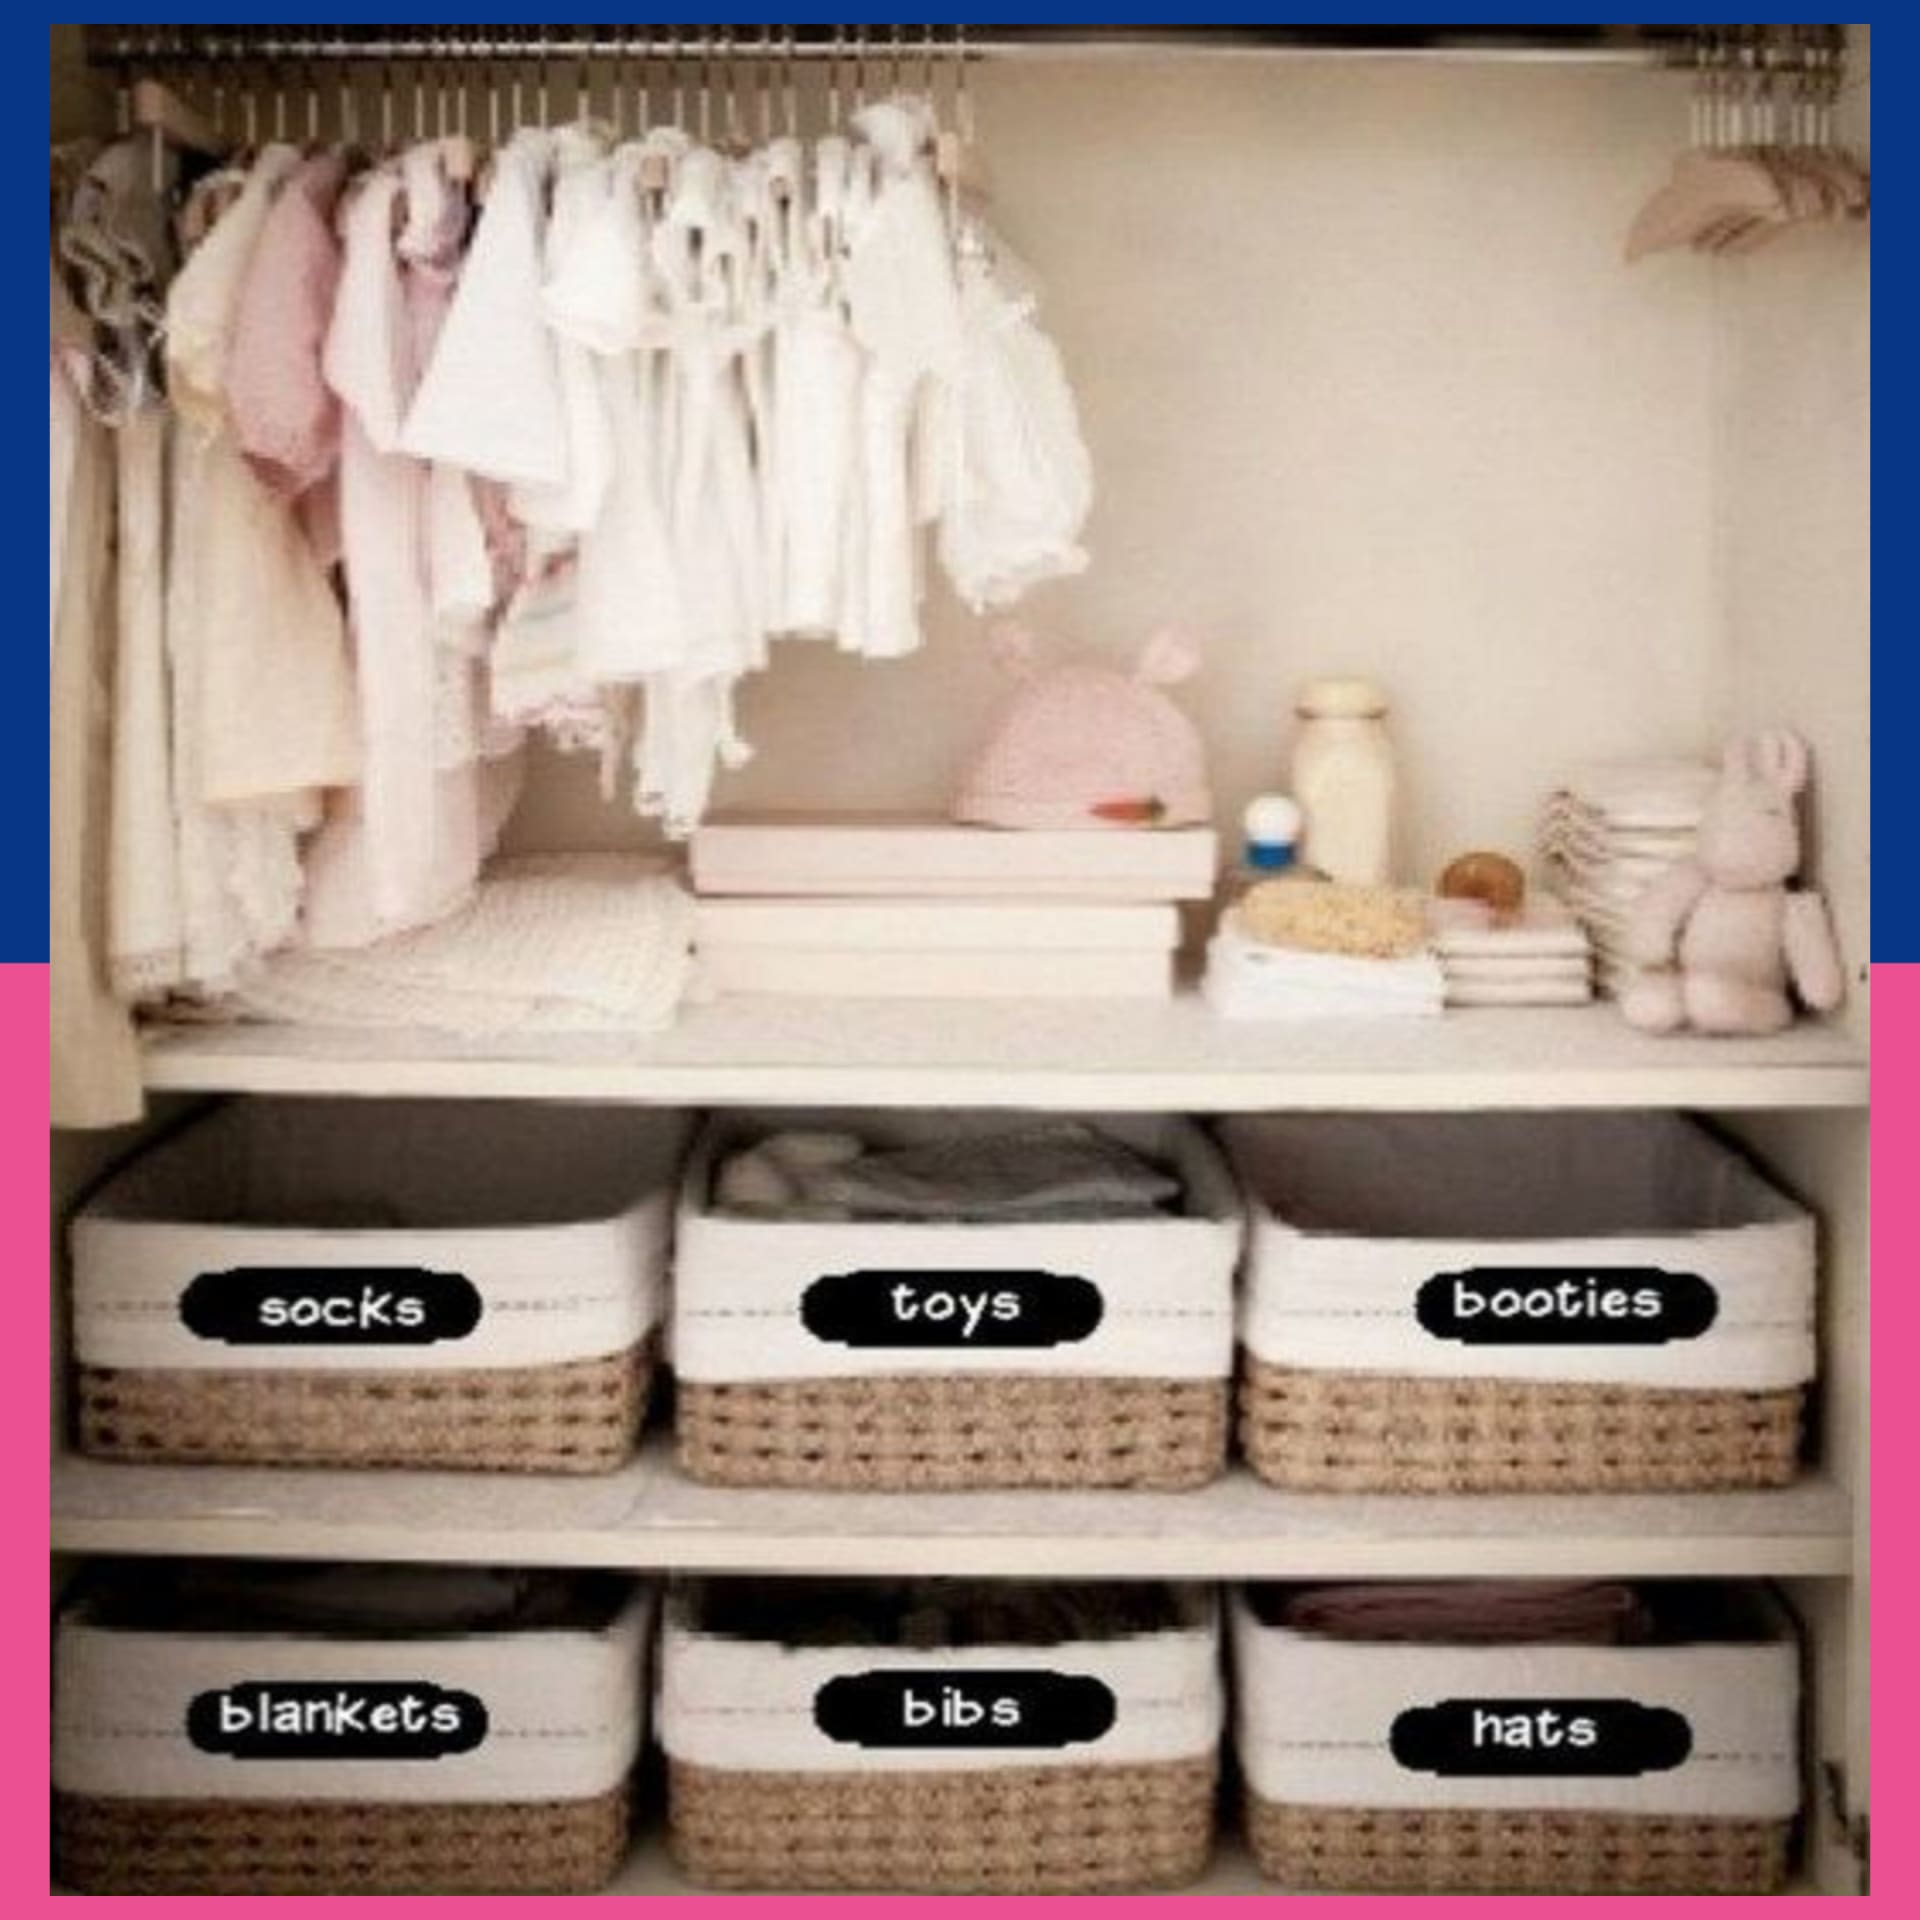 DIY organization ideas for the home - organizing with baskets in the baby closet - smart baby clothes organization dieas - nursery closet organization ideas for the home